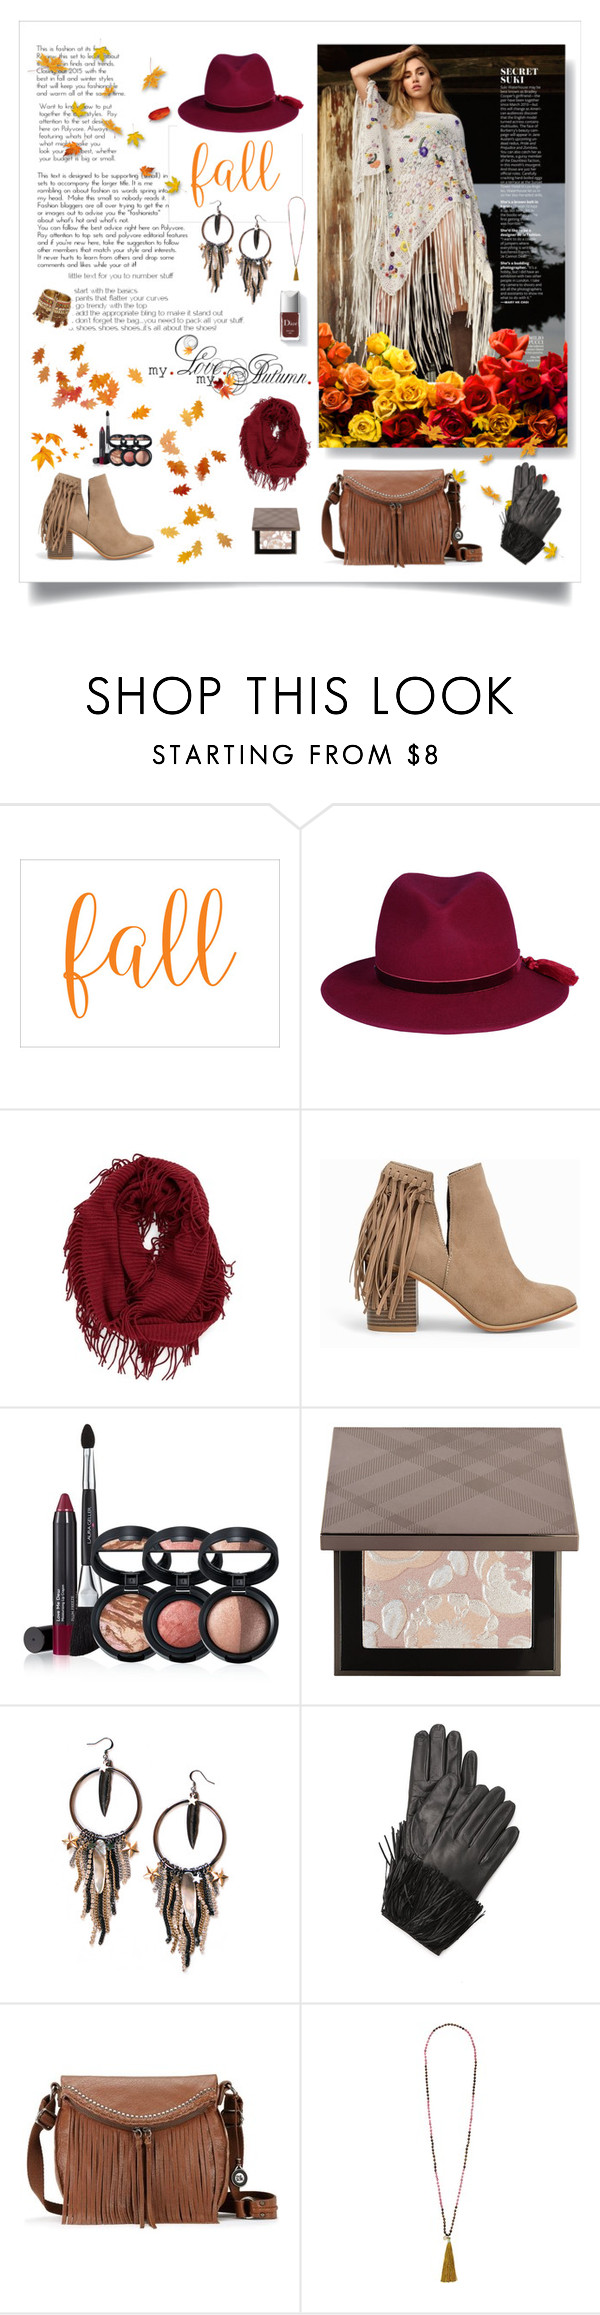 """On the Fringes of Fall"" by magnolialily-prints ❤ liked on Polyvore featuring BP., Nly Shoes, Laura Geller, Burberry, Maiden-Art, Diane Von Furstenberg, The Sak and French Connection"